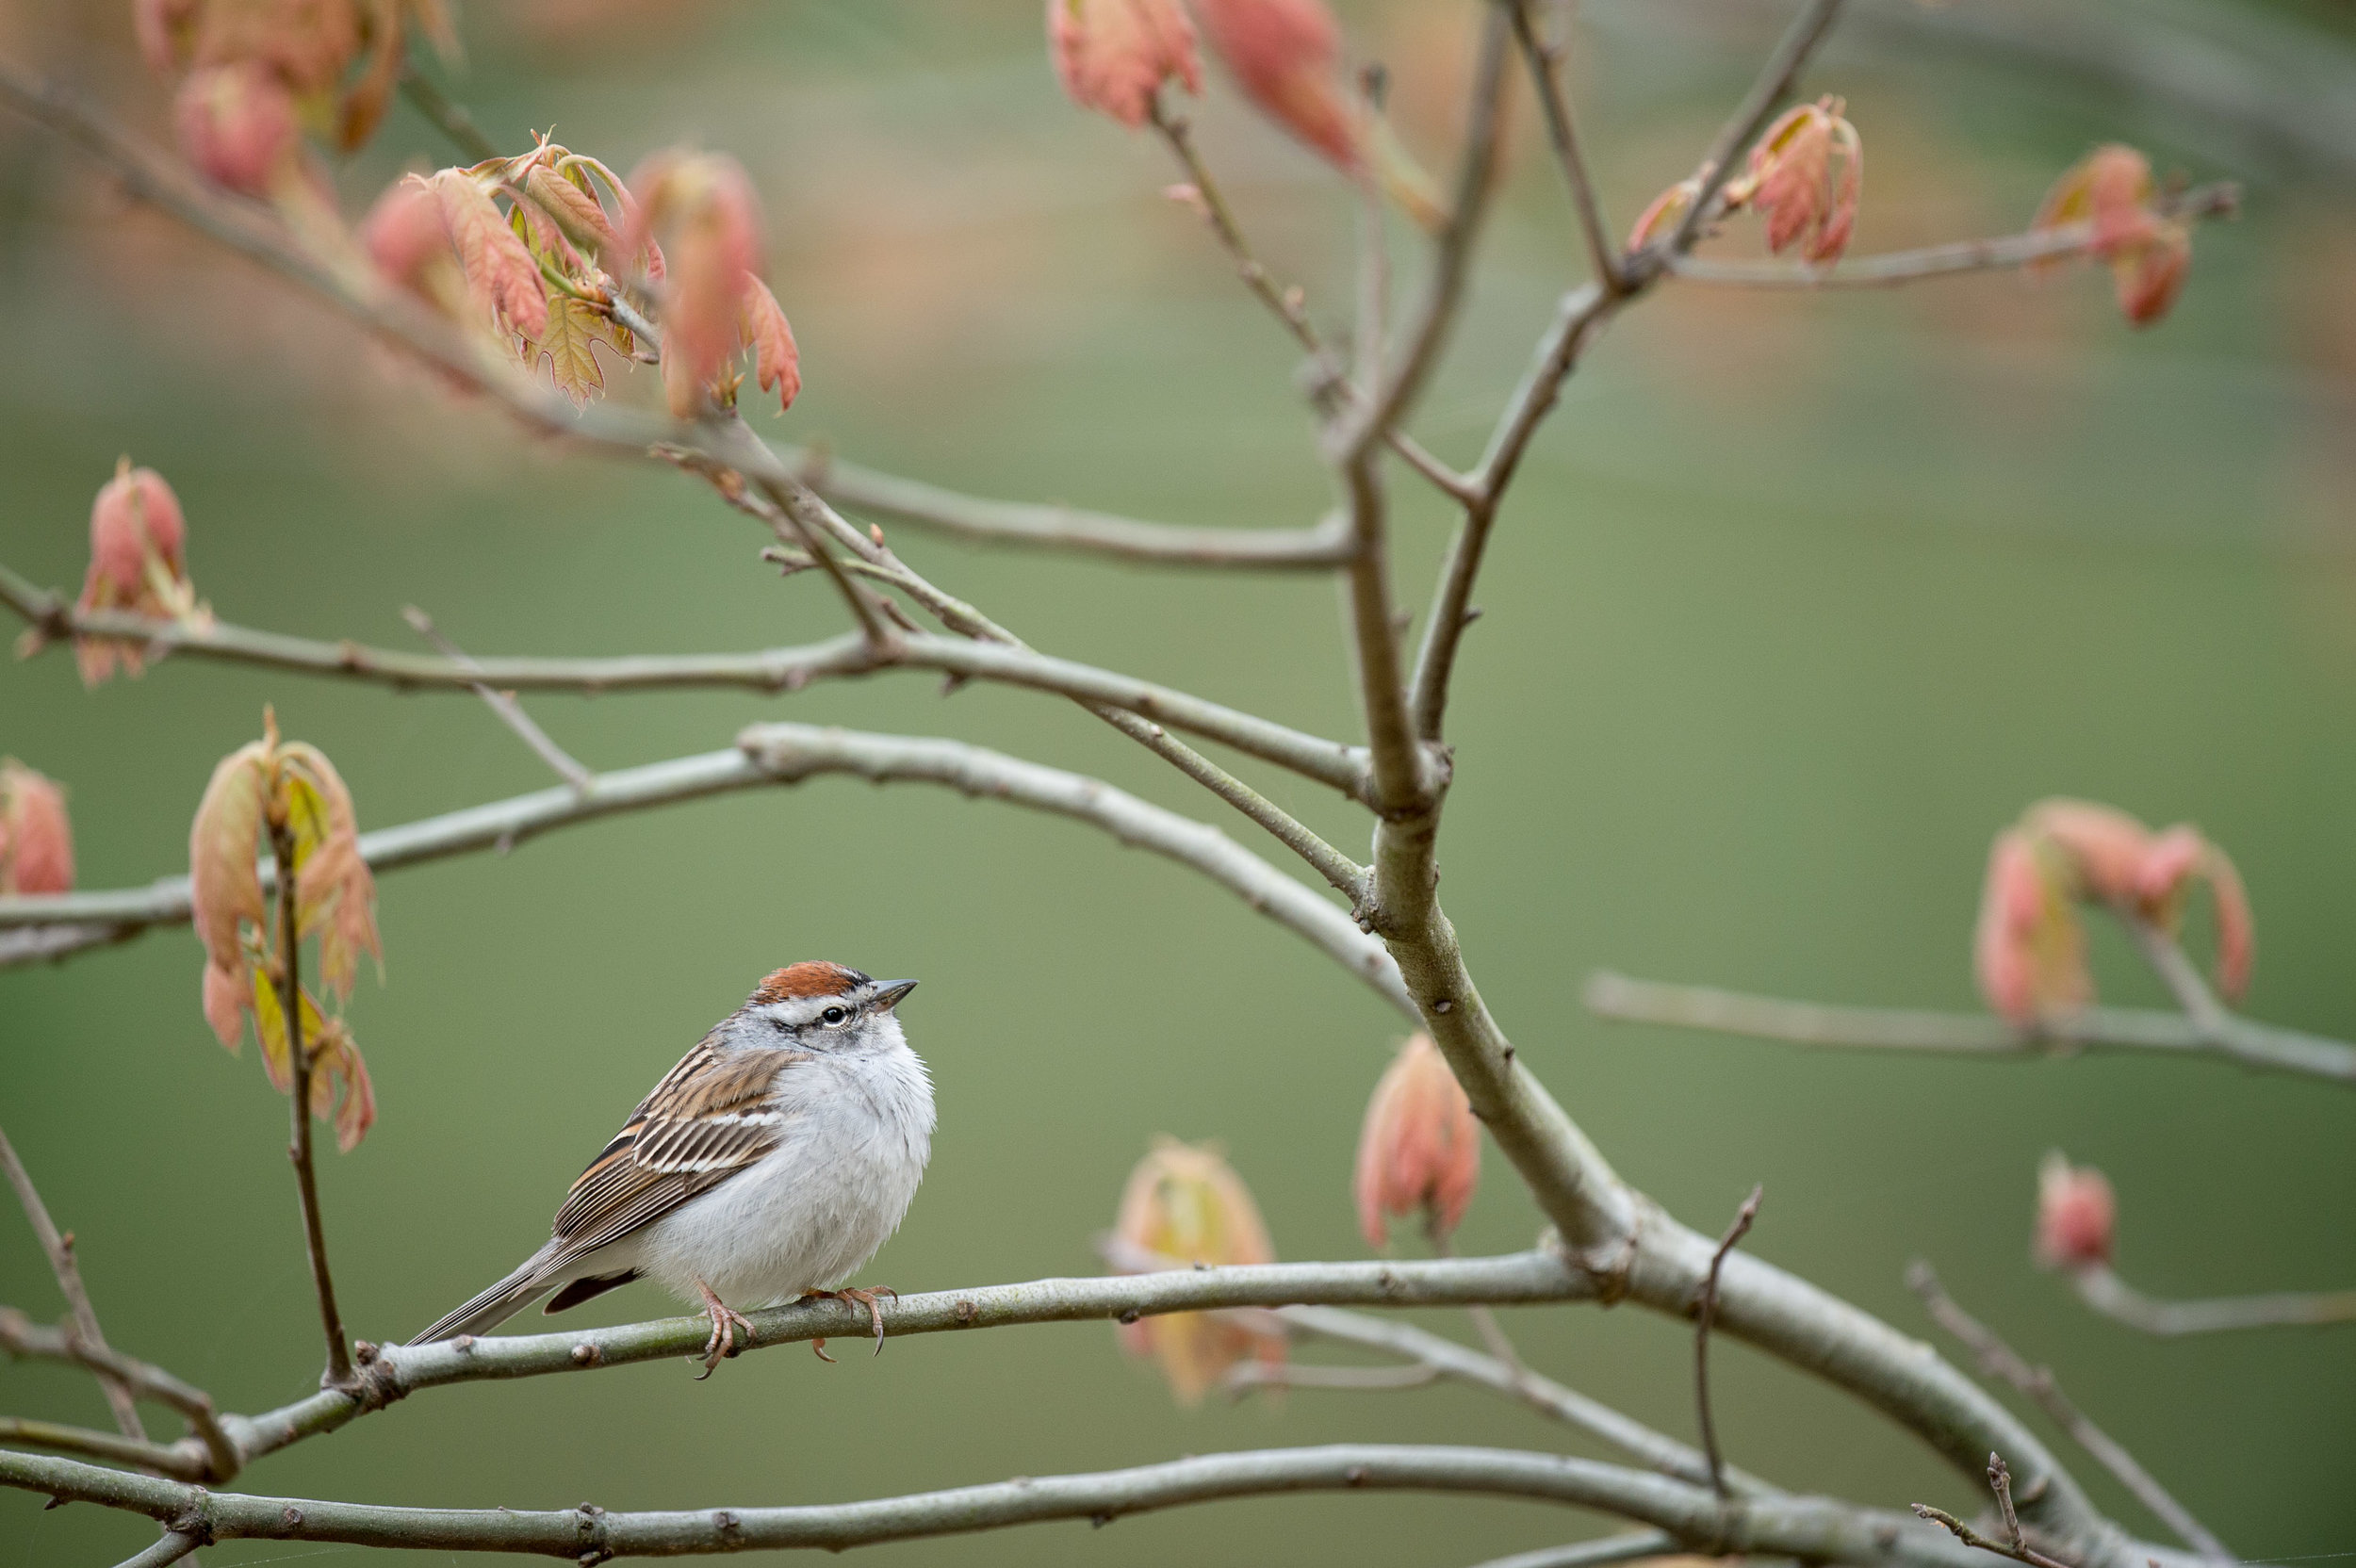 A Chipping Sparrow perches on a branch surrounded by brand new reddish colored leaves.